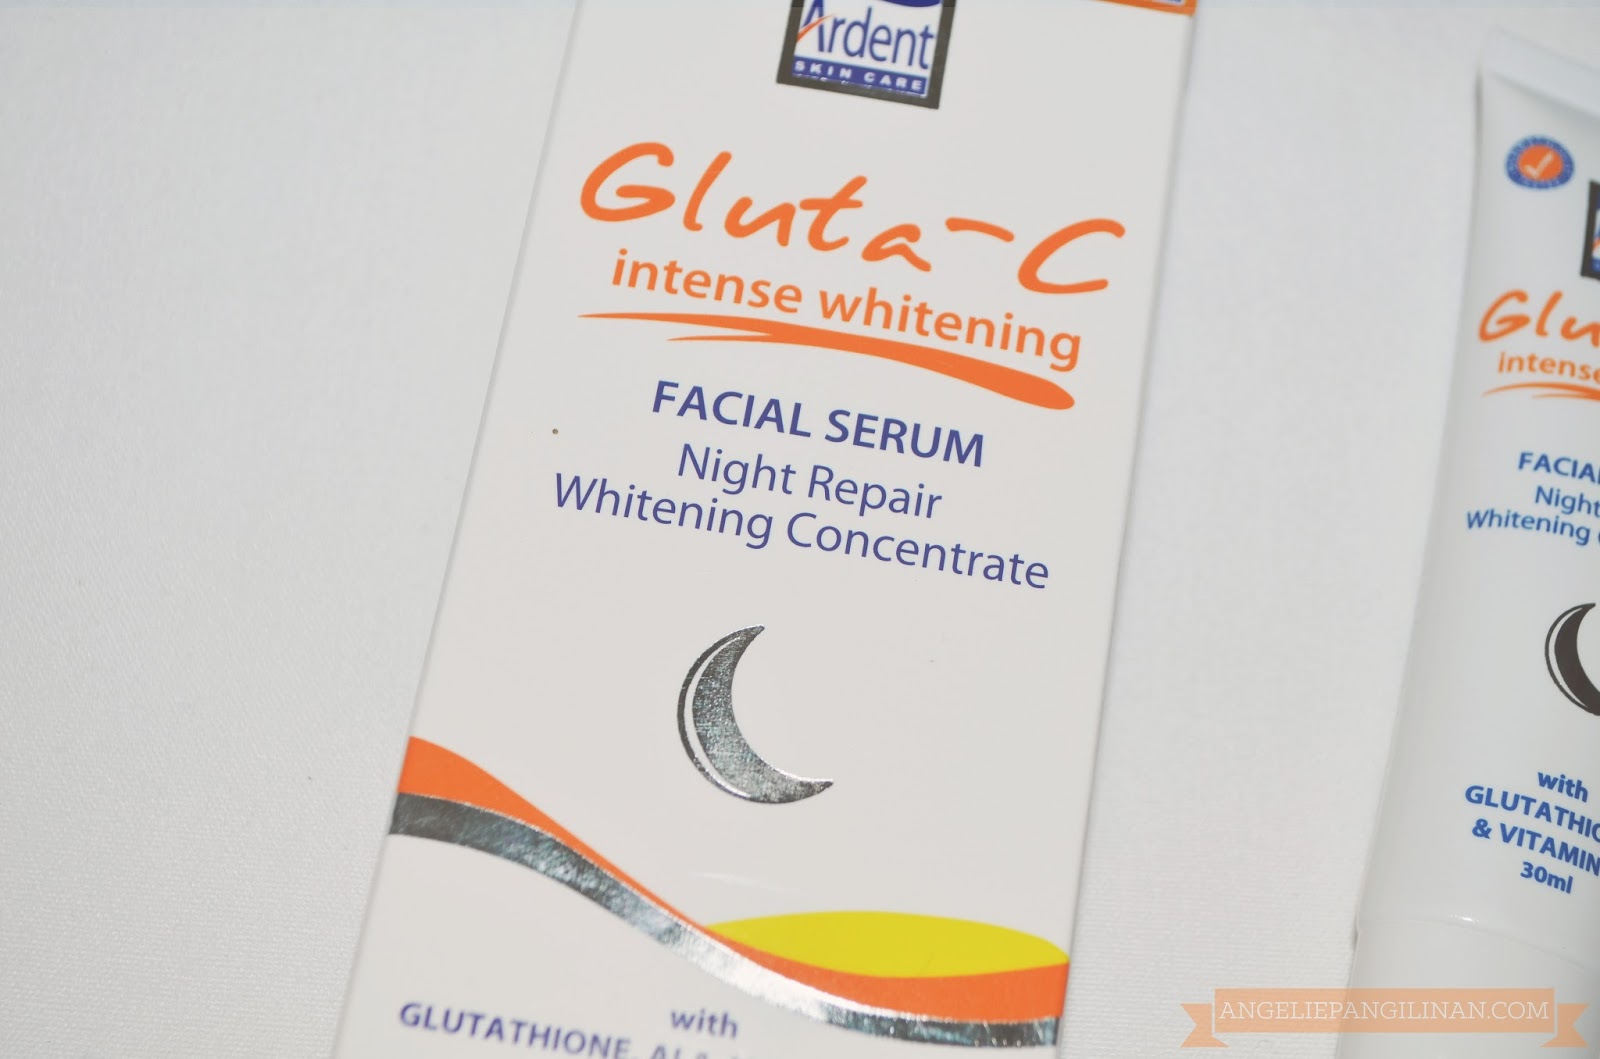 Gluta C Intense Whitening Facial Serum review